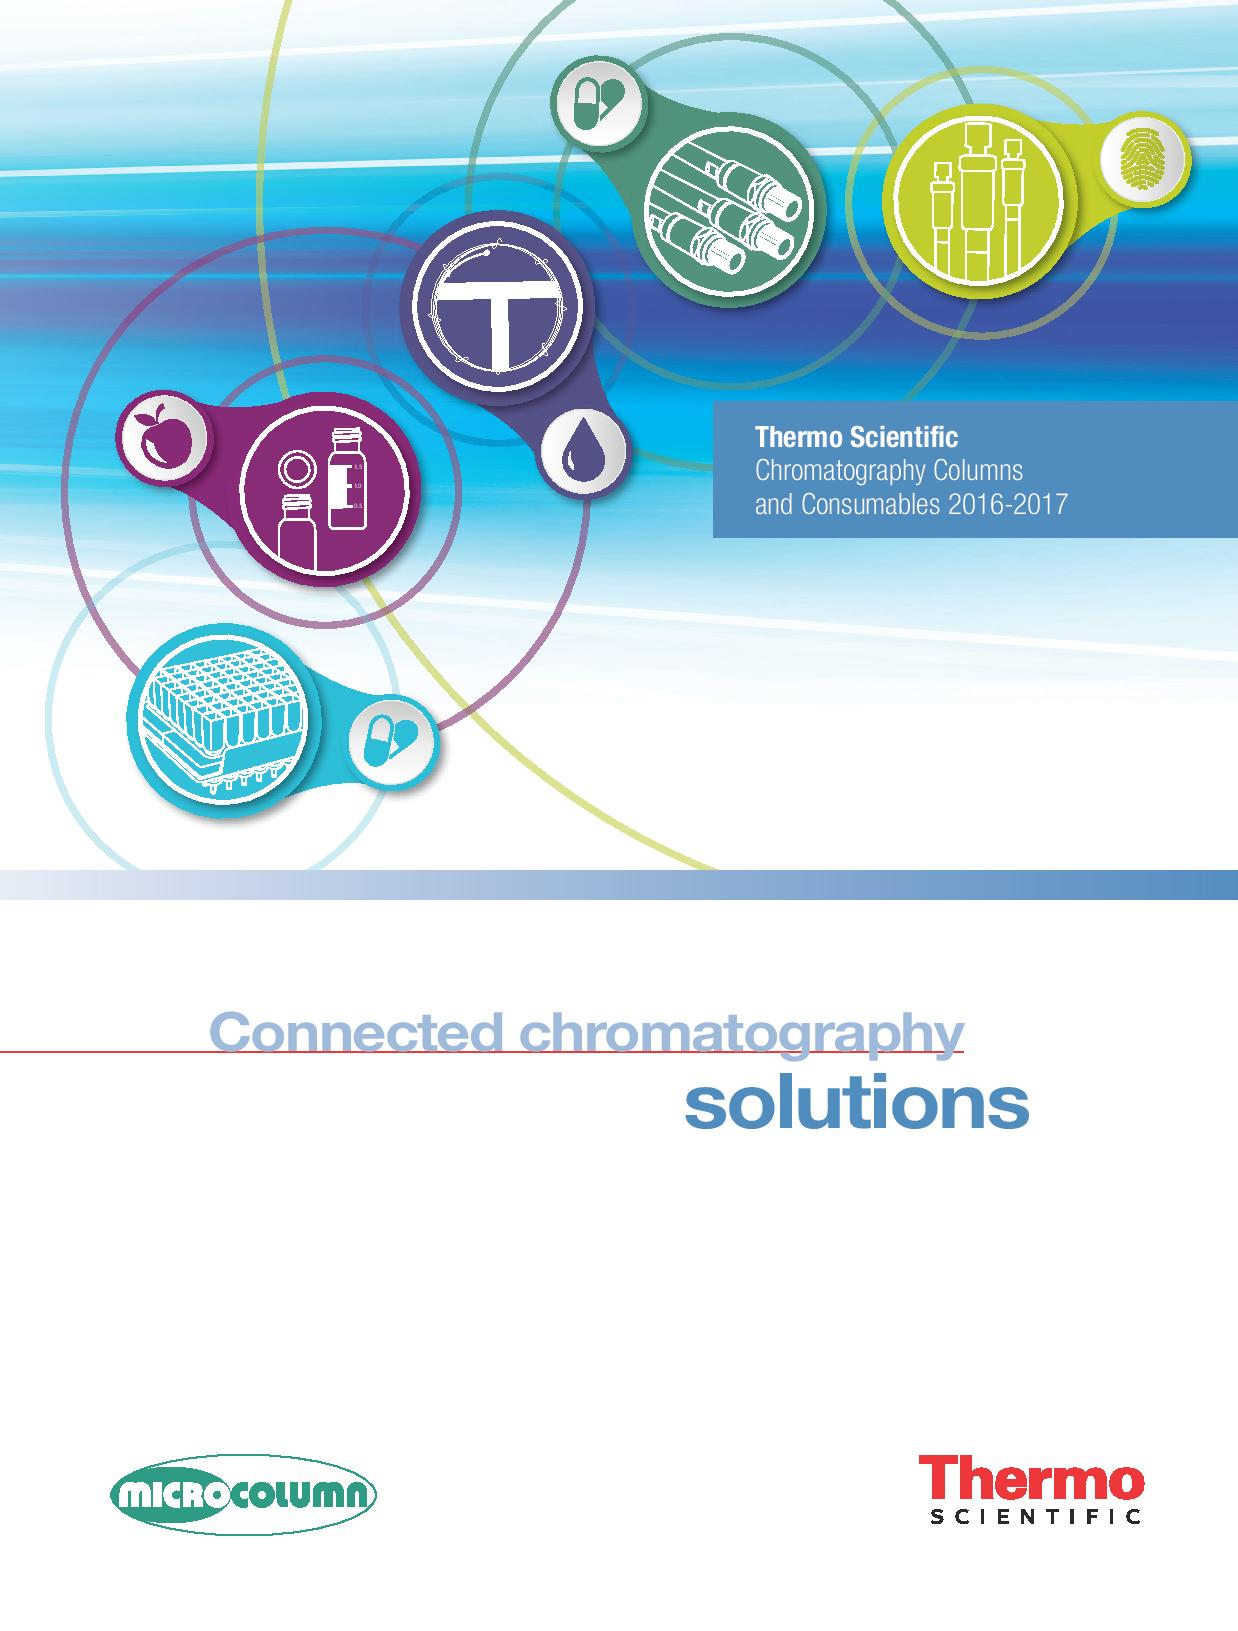 Catalogo Thermo Scientific Chromatography Columns and Consumables